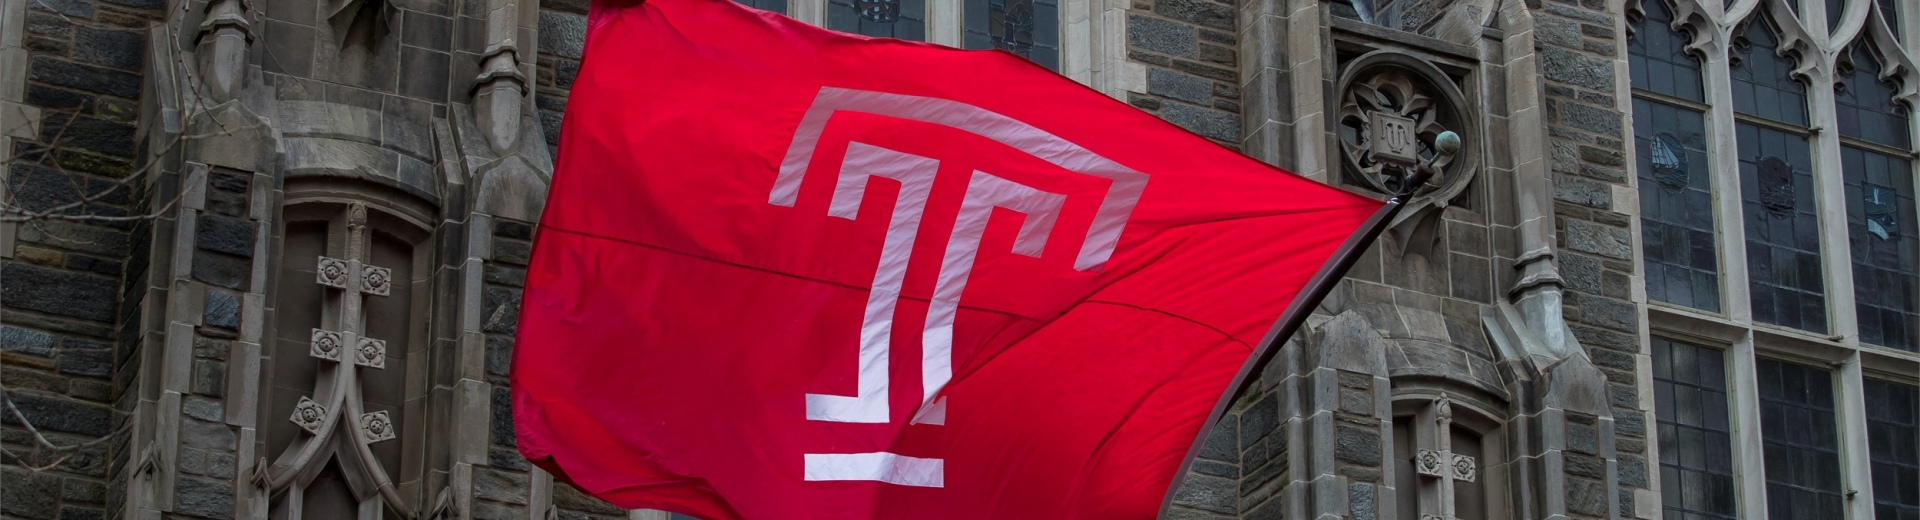 The Temple T flag raised in front of Mitten Hall.